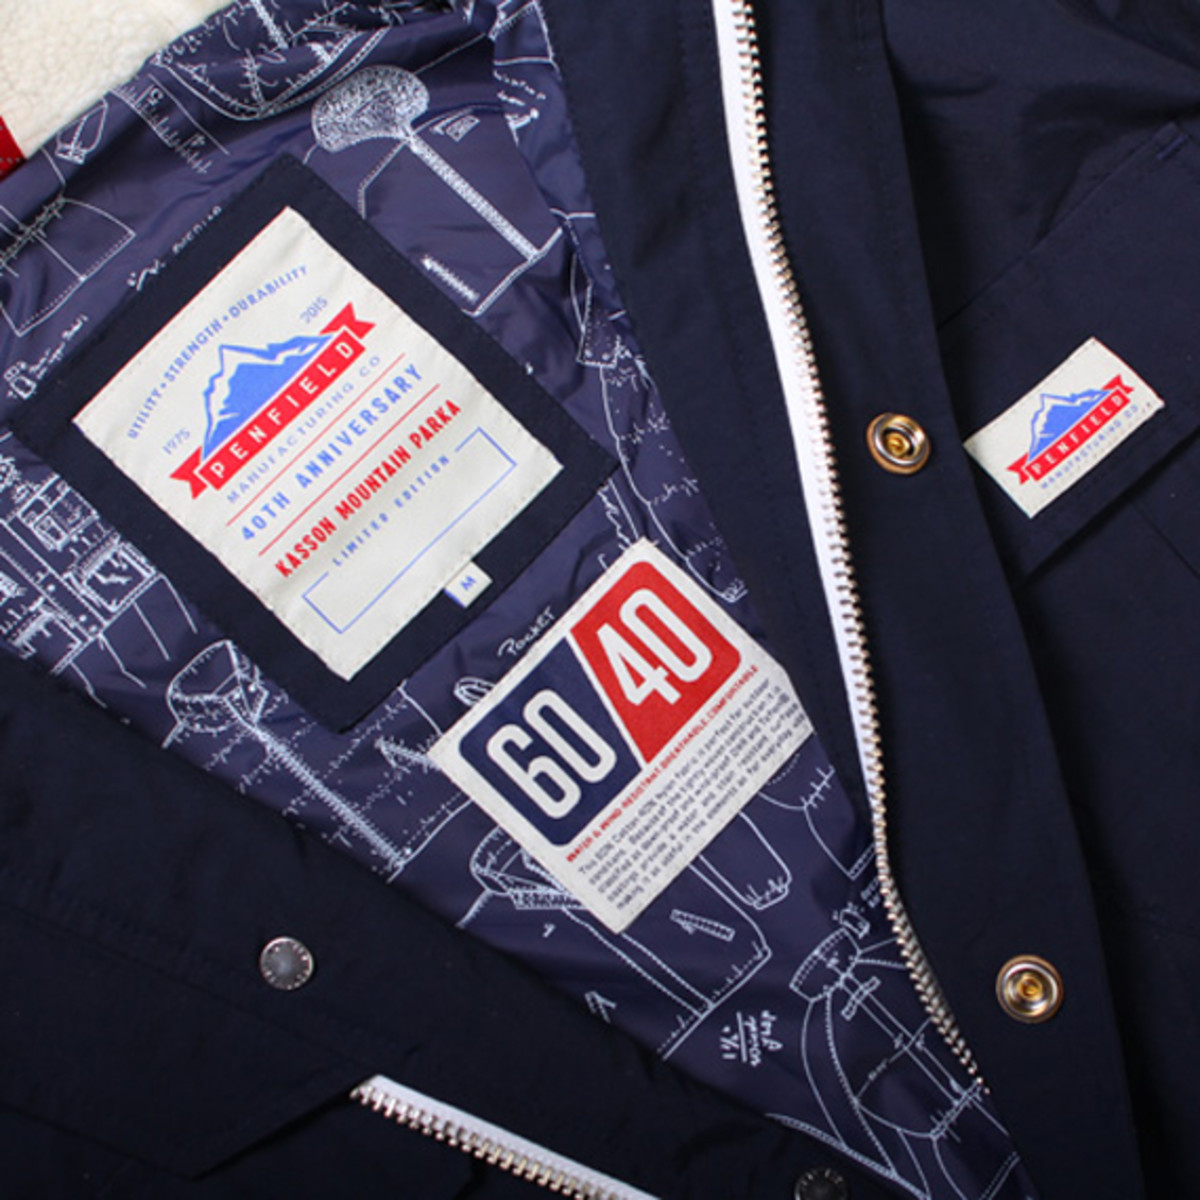 penfield-unveils-40th-anniversary-collection-02